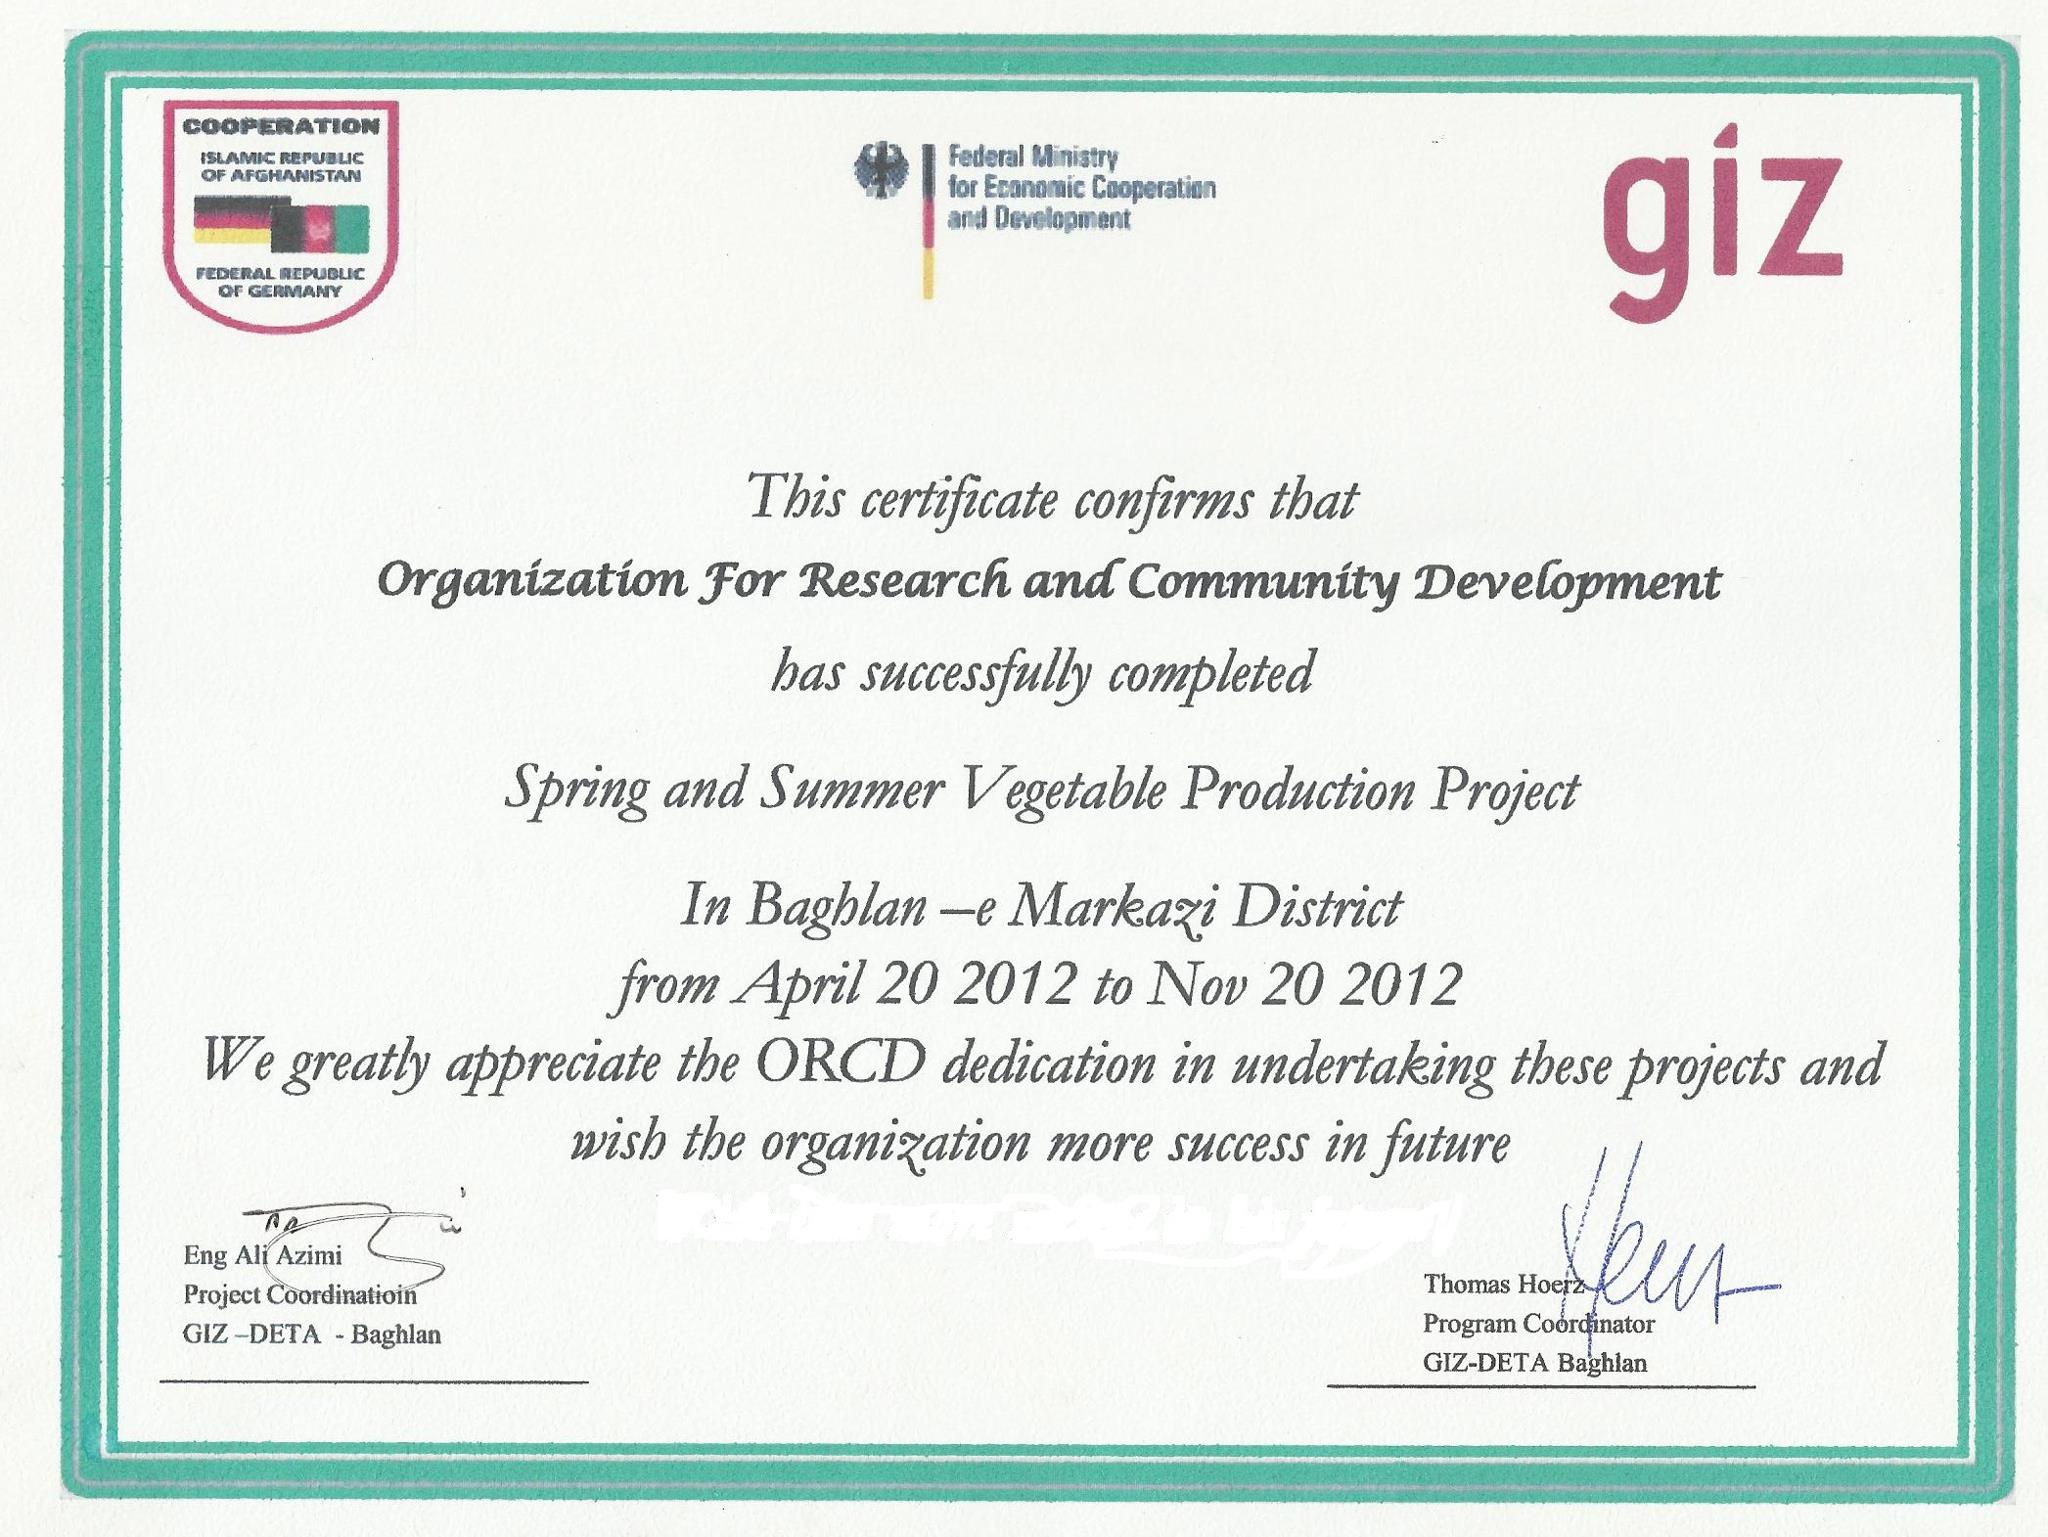 GIZ-DETA on behalf of Germany Federal Ministry for Economic Cooperation and Development awards certificate of recognition for the outstanding performance of ORCD in Baghlan for implementing a project in the Agriculture field